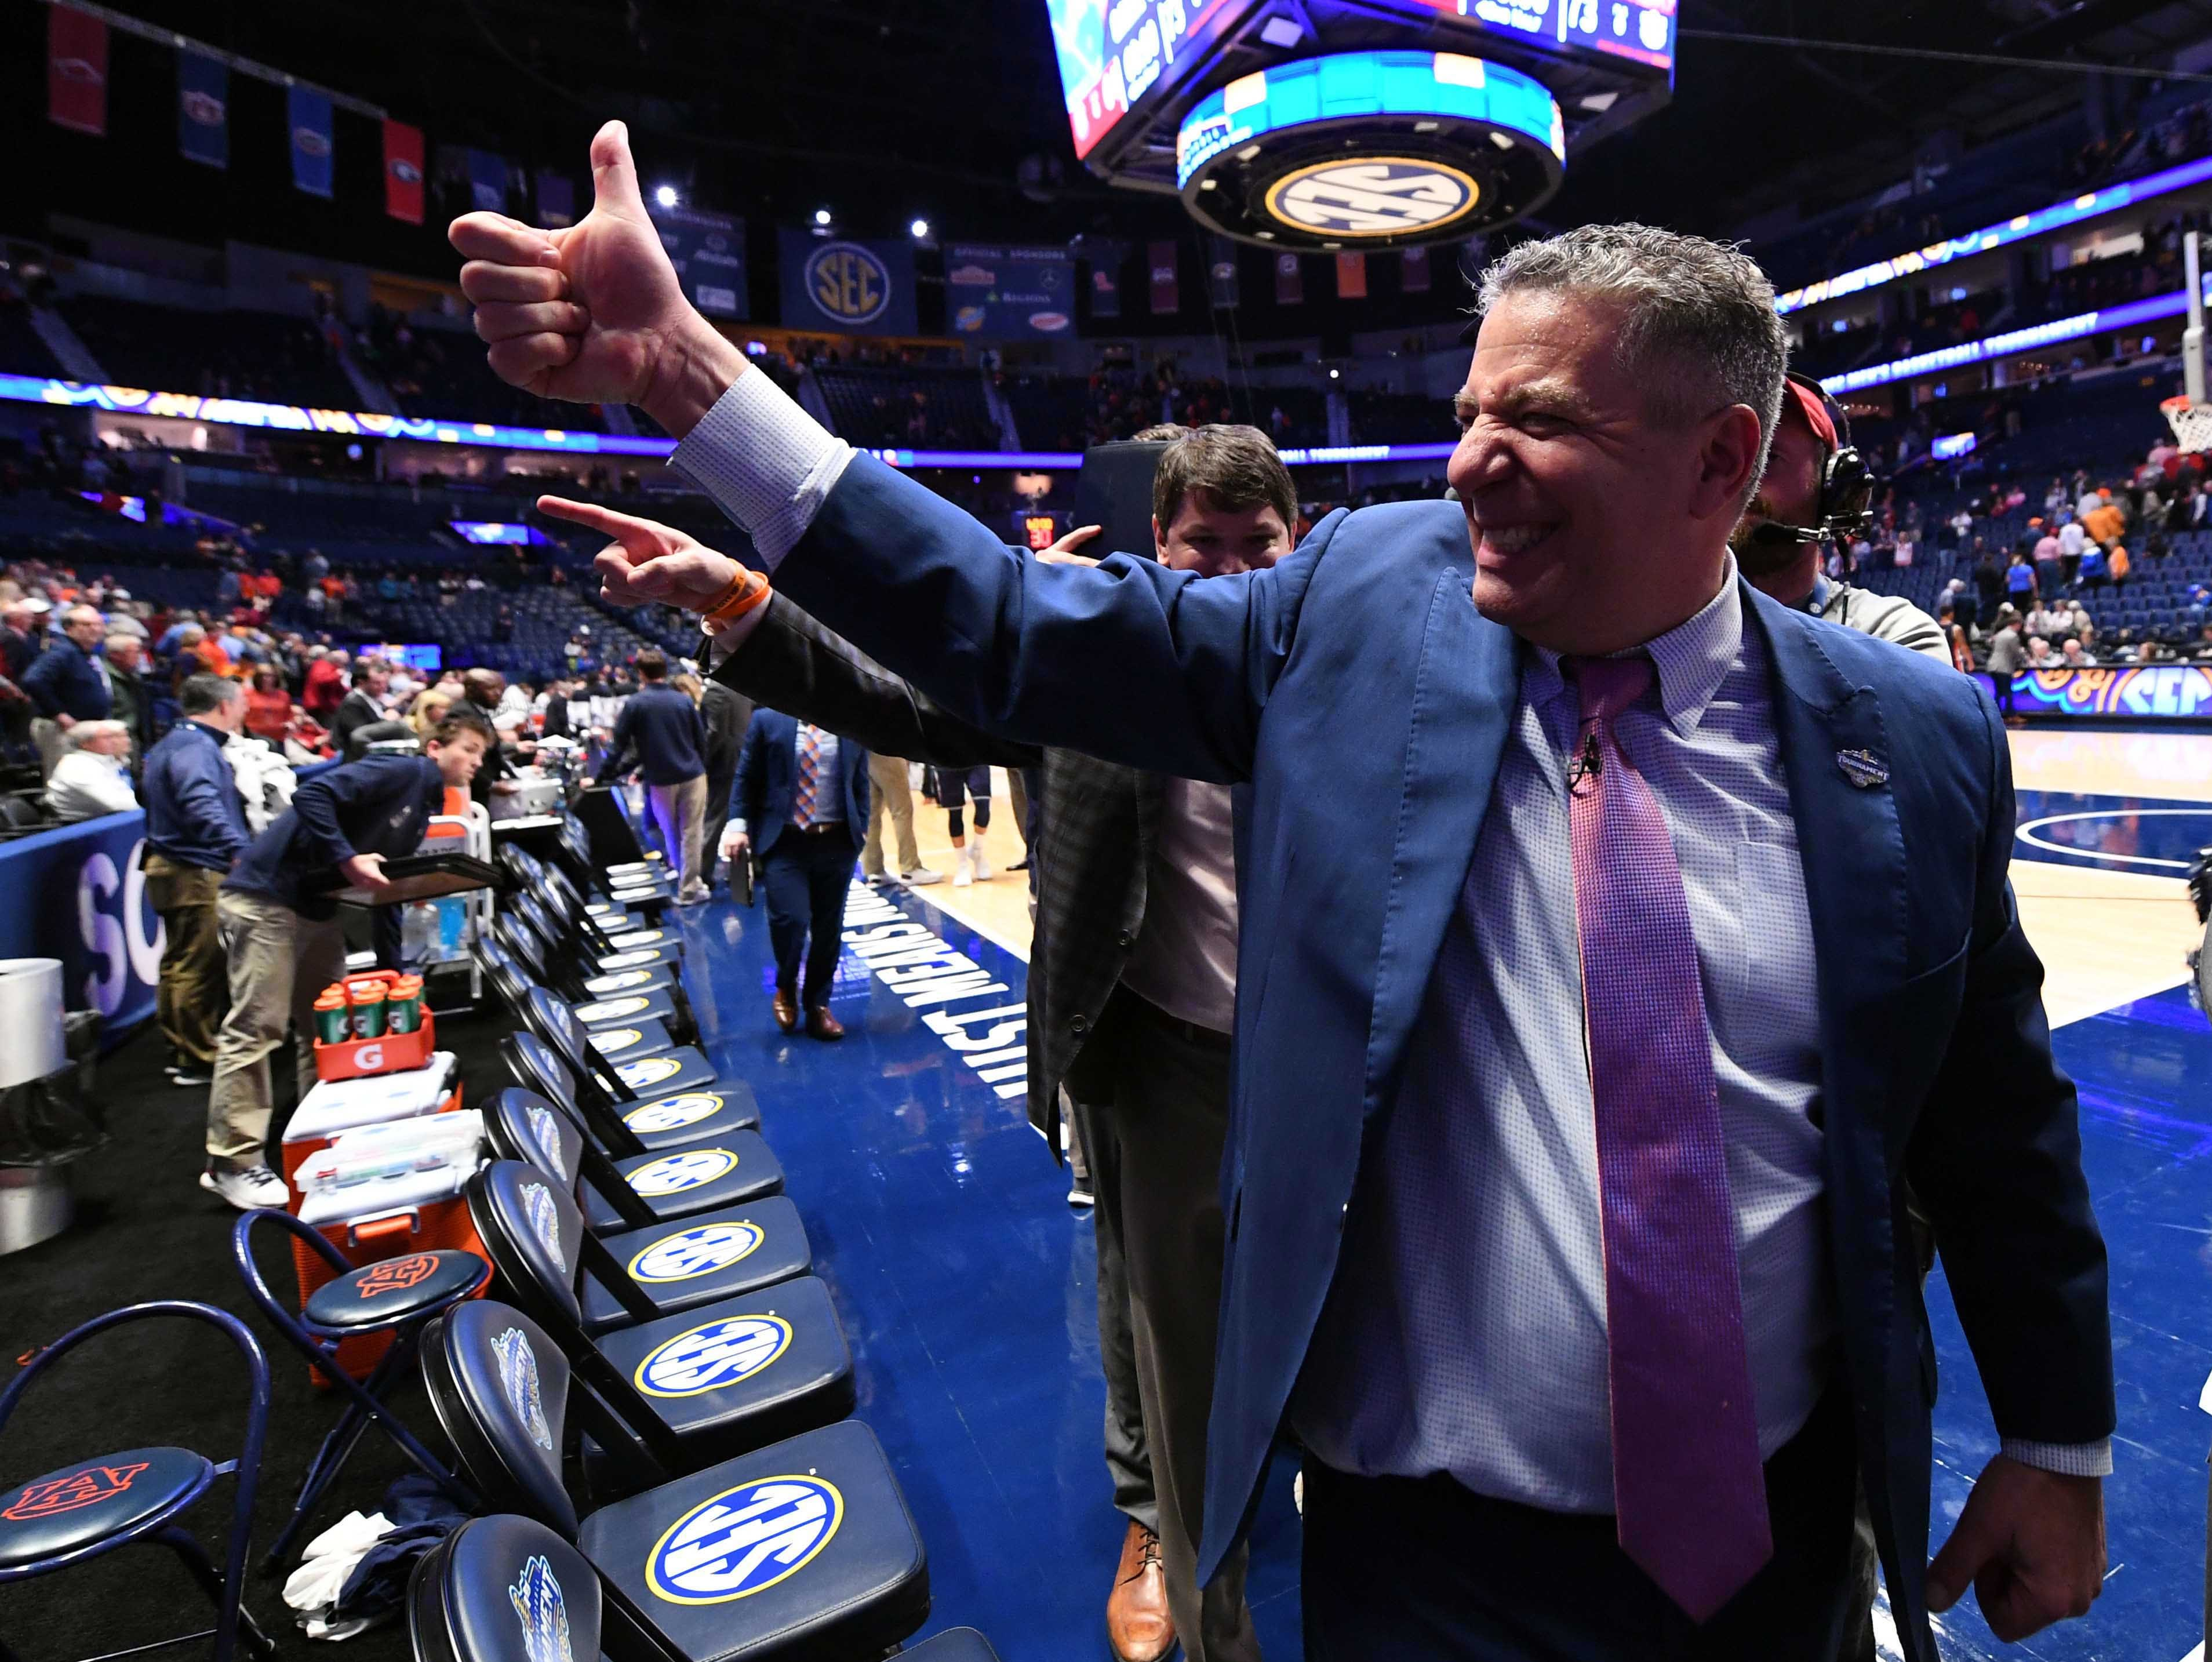 Mar 15, 2019; Nashville, TN, USA; Auburn Tigers head coach Bruce Pearl celebrates after a win against the South Carolina Gamecocks in the SEC conference tournament at Bridgestone Arena. Mandatory Credit: Christopher Hanewinckel-USA TODAY Sports